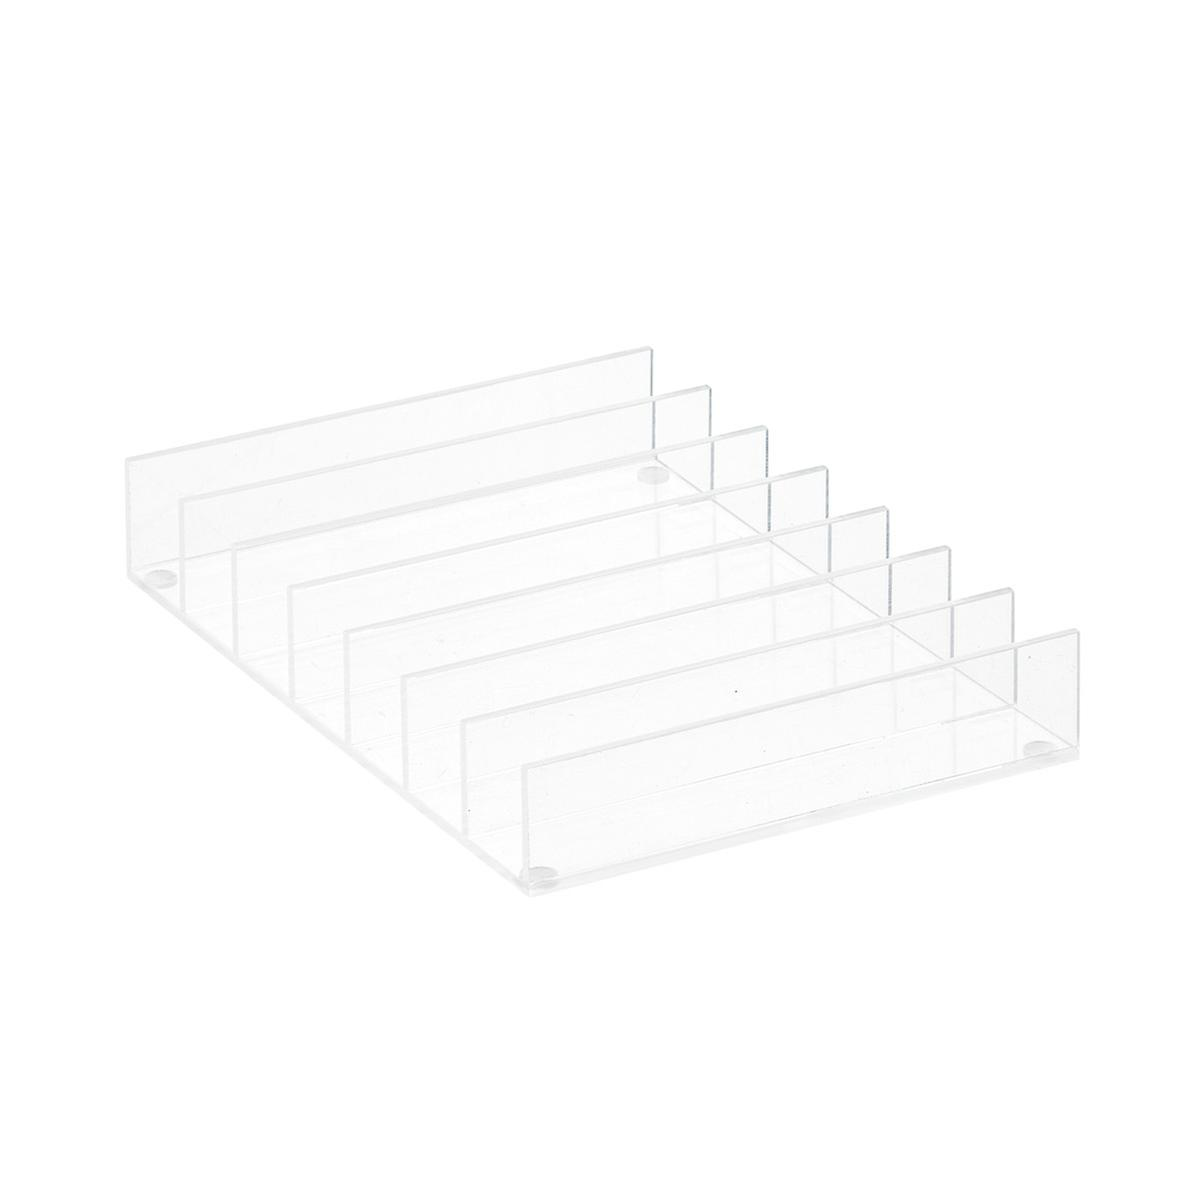 7-Section Divider